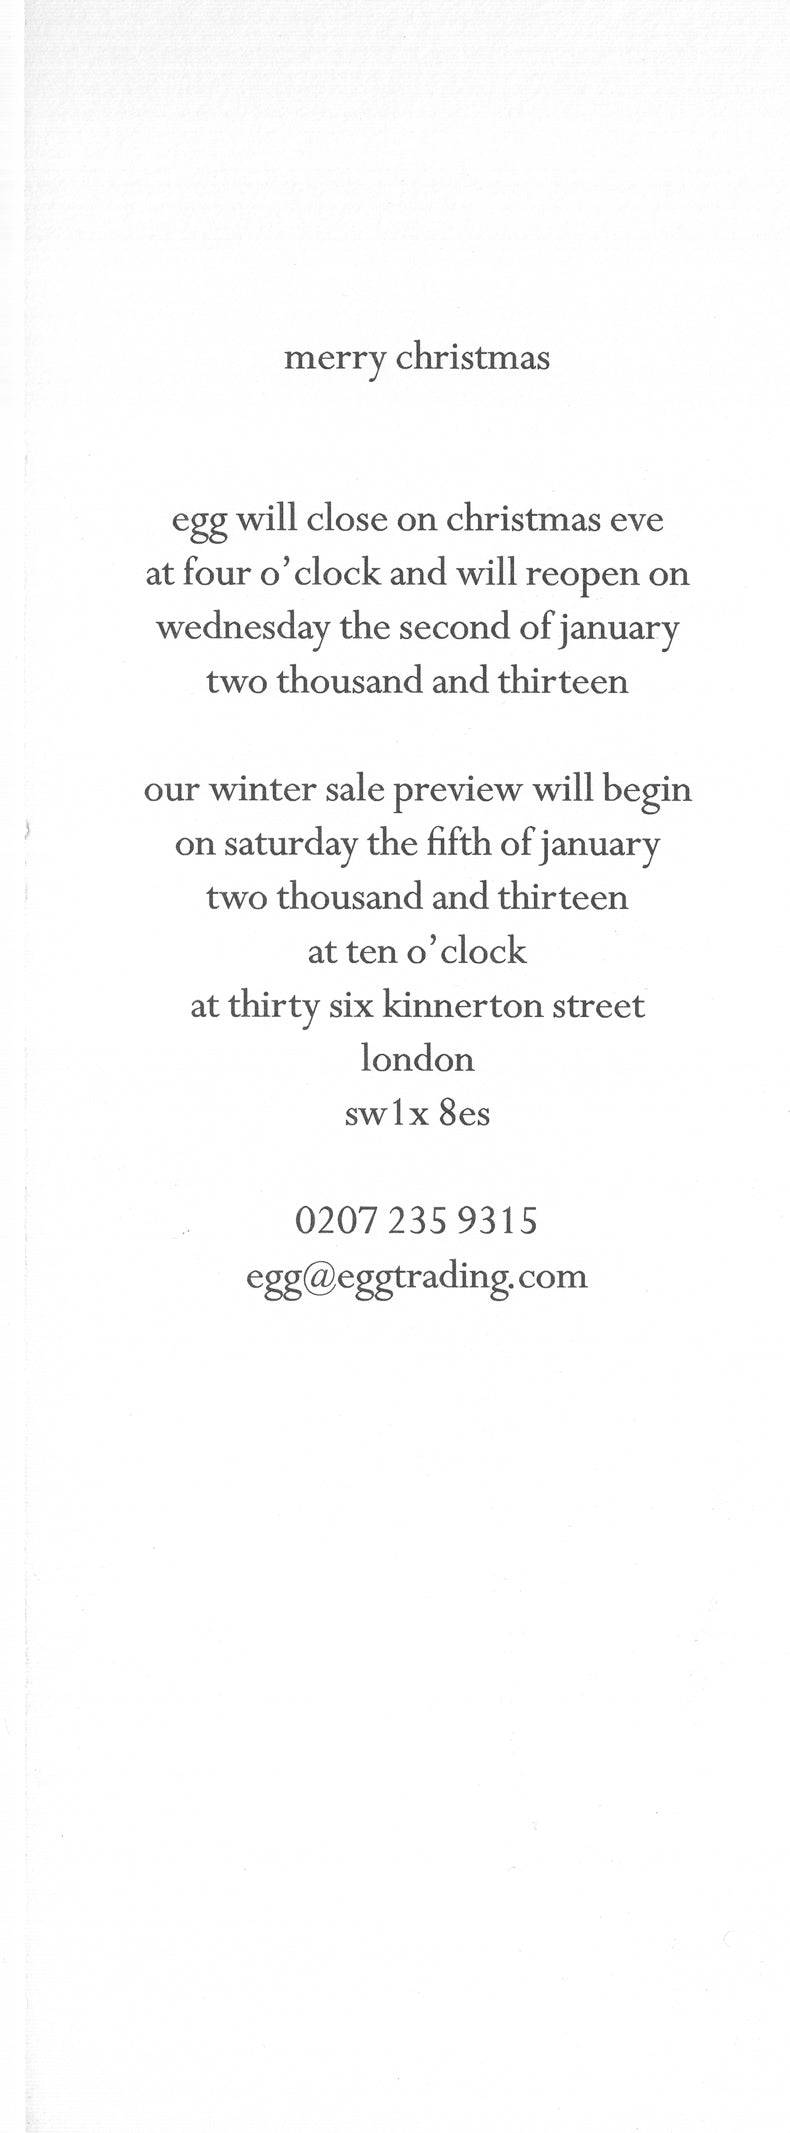 egg winter sale January 2013